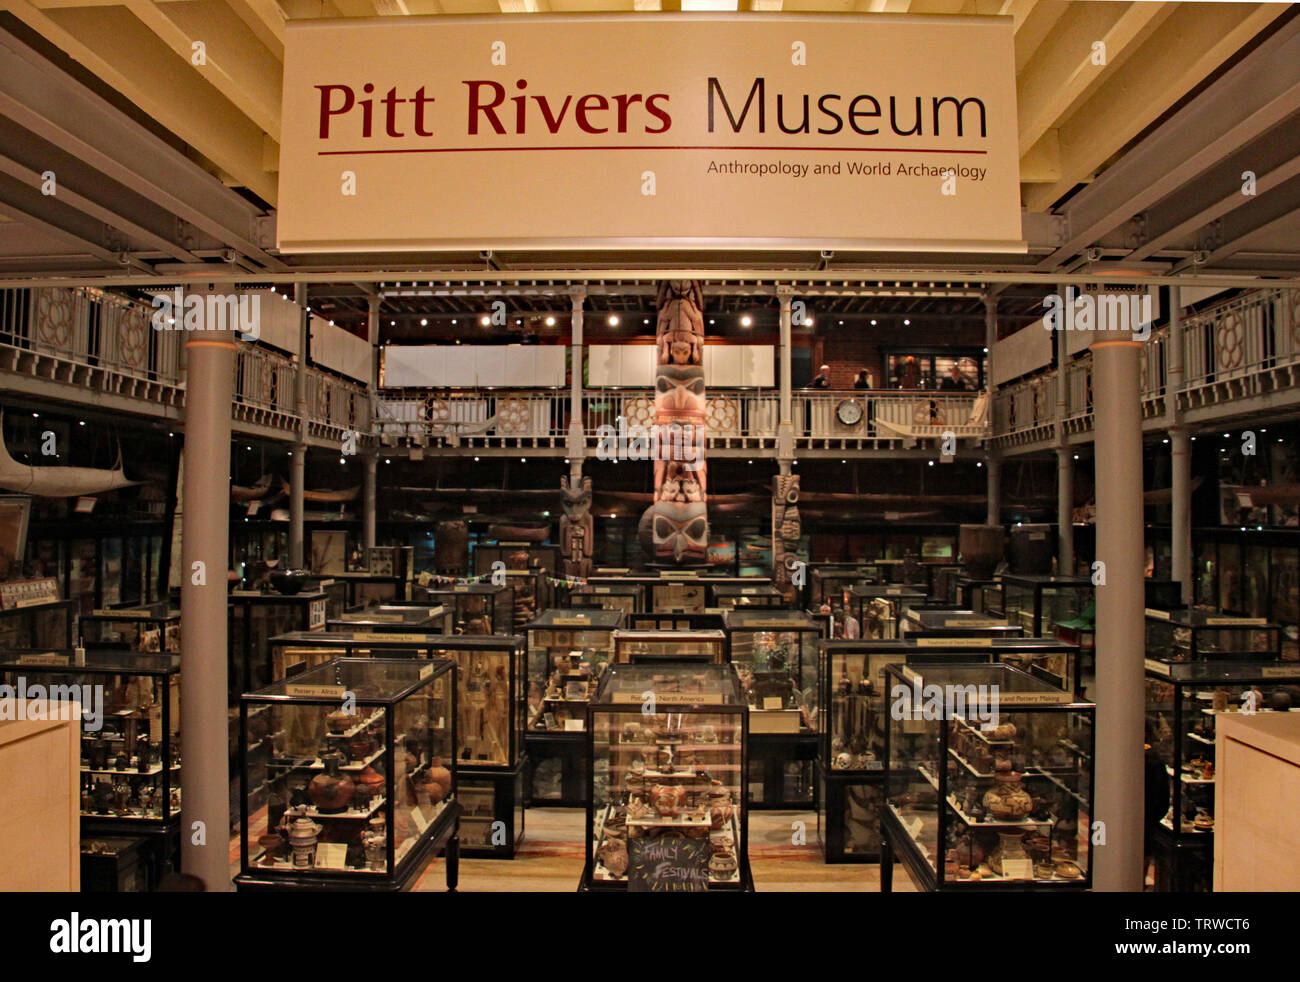 The entrance to The Pitt Rivers Museum in Oxford. A collection of over half a million archeological and anthropological artifacts. - Stock Image